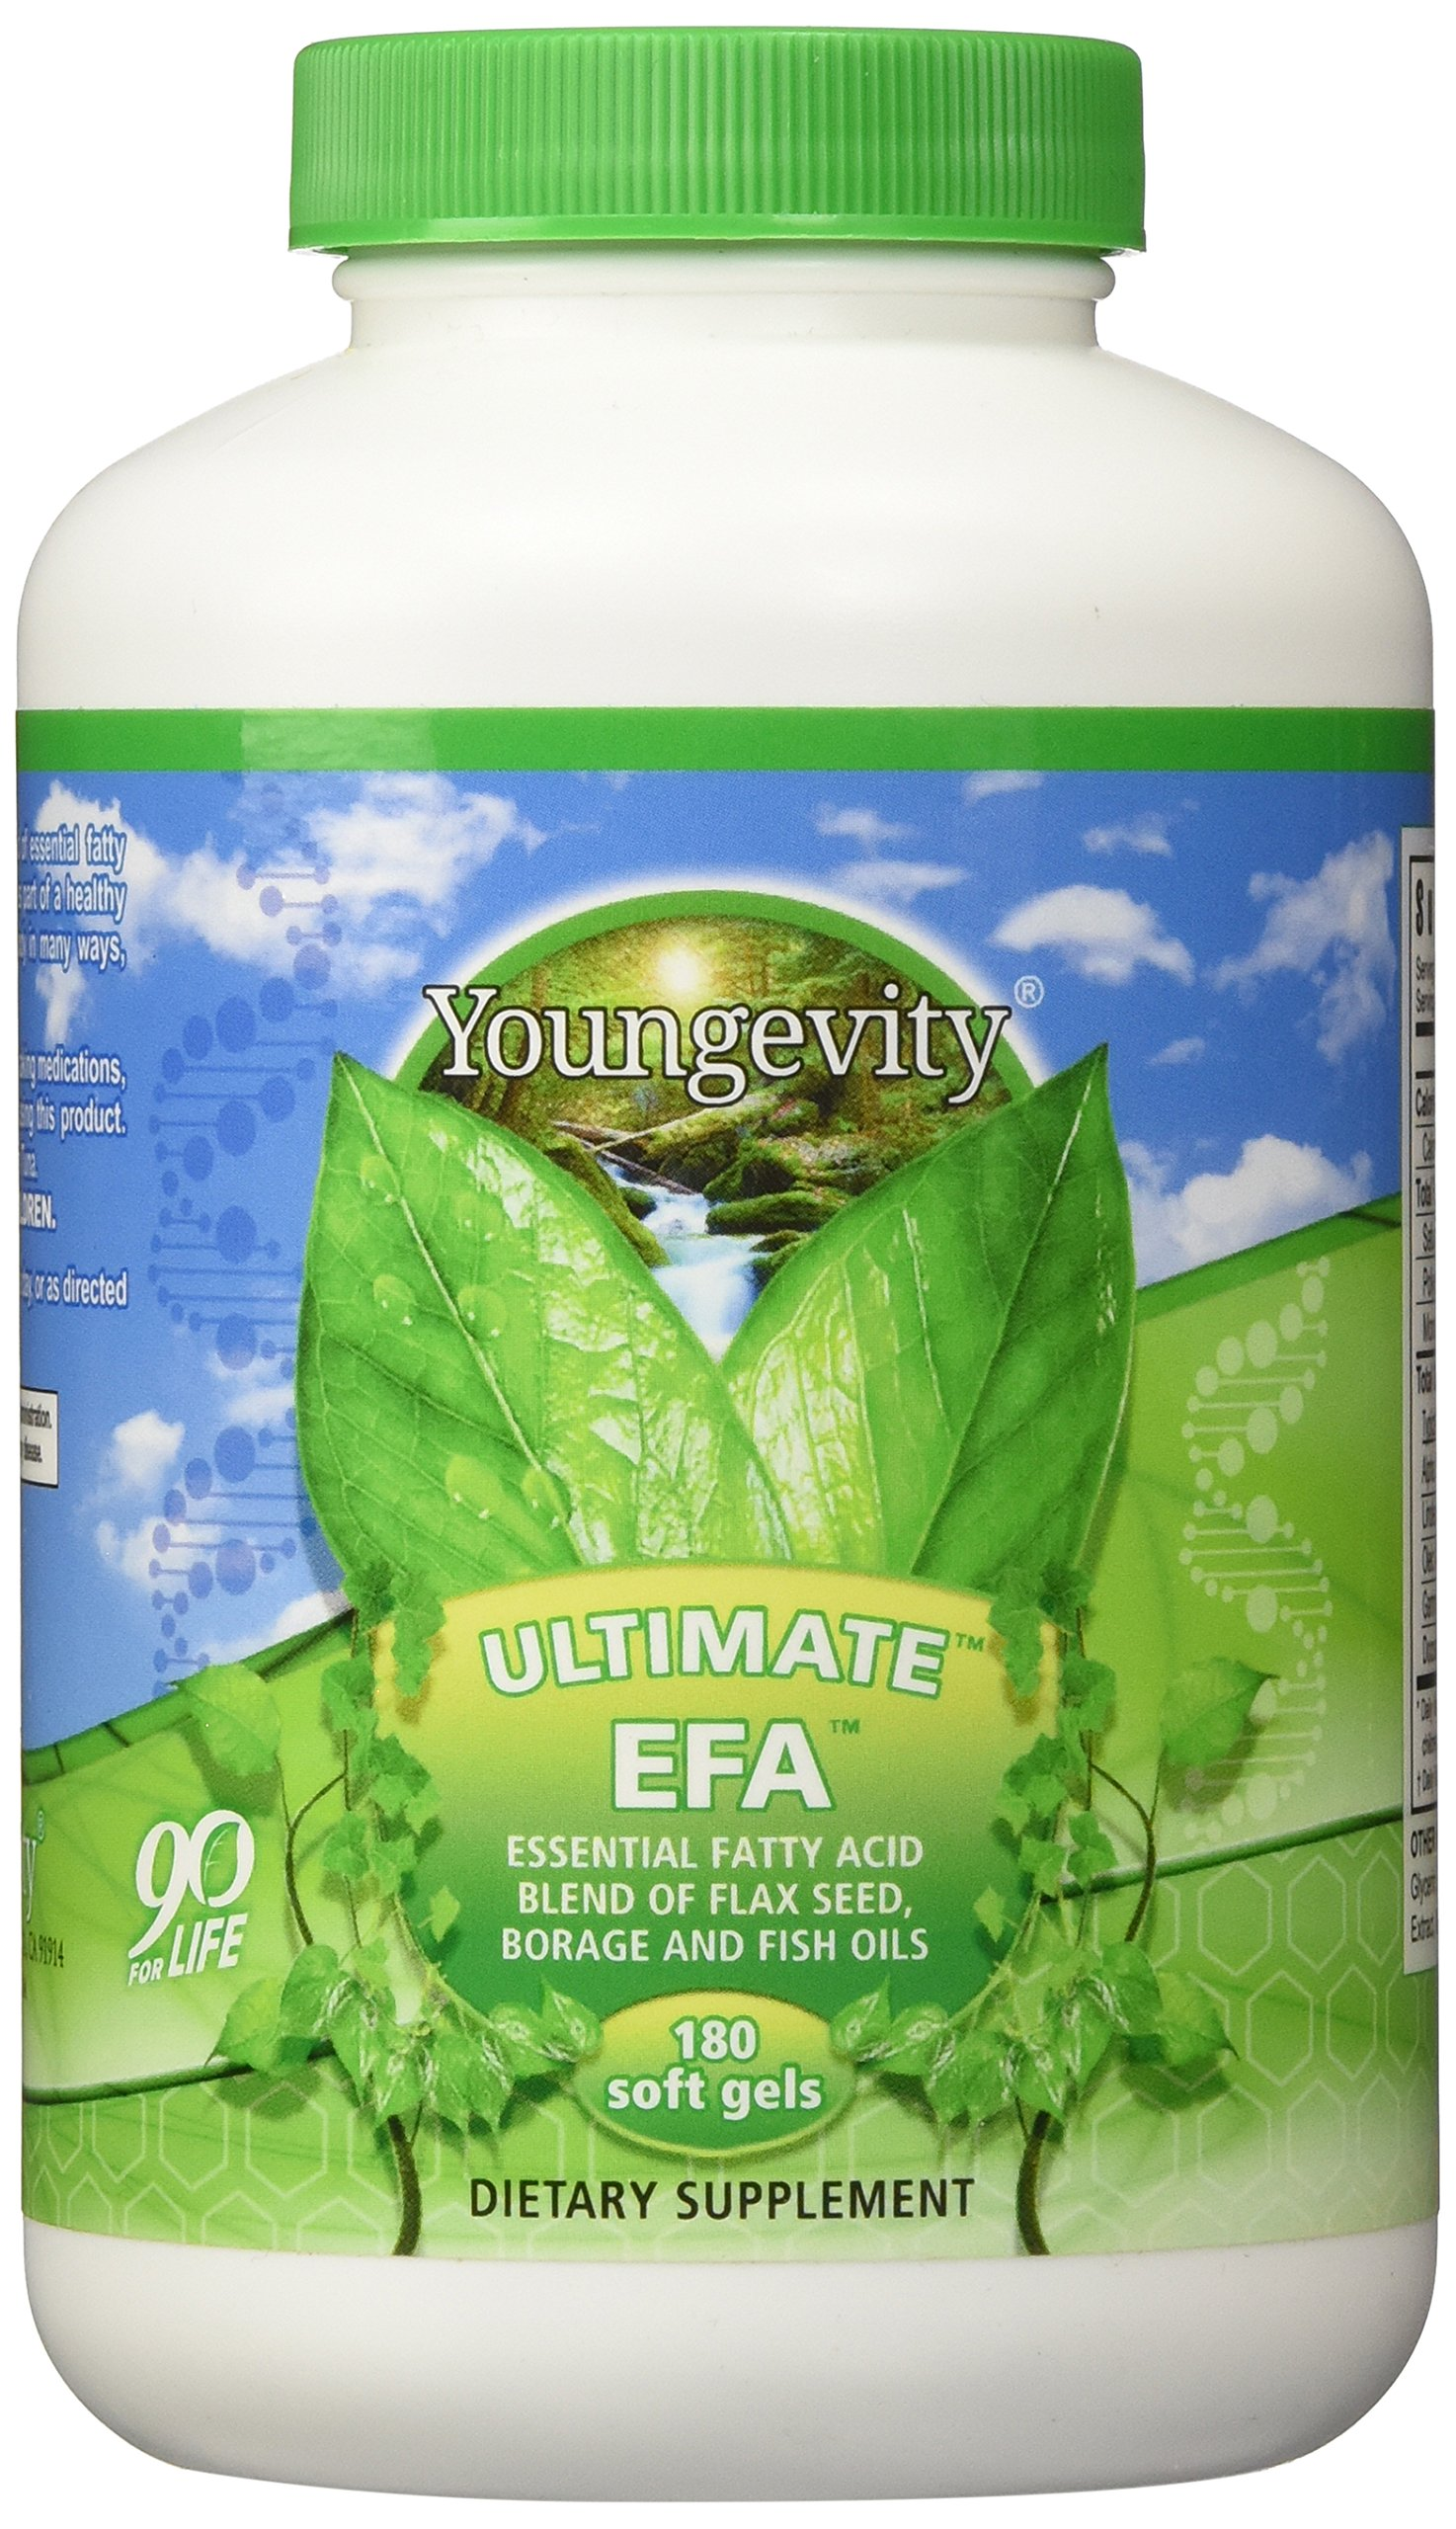 ULTIMATE EFA - 180 SOFTGELS by Youngevity (Image #1)